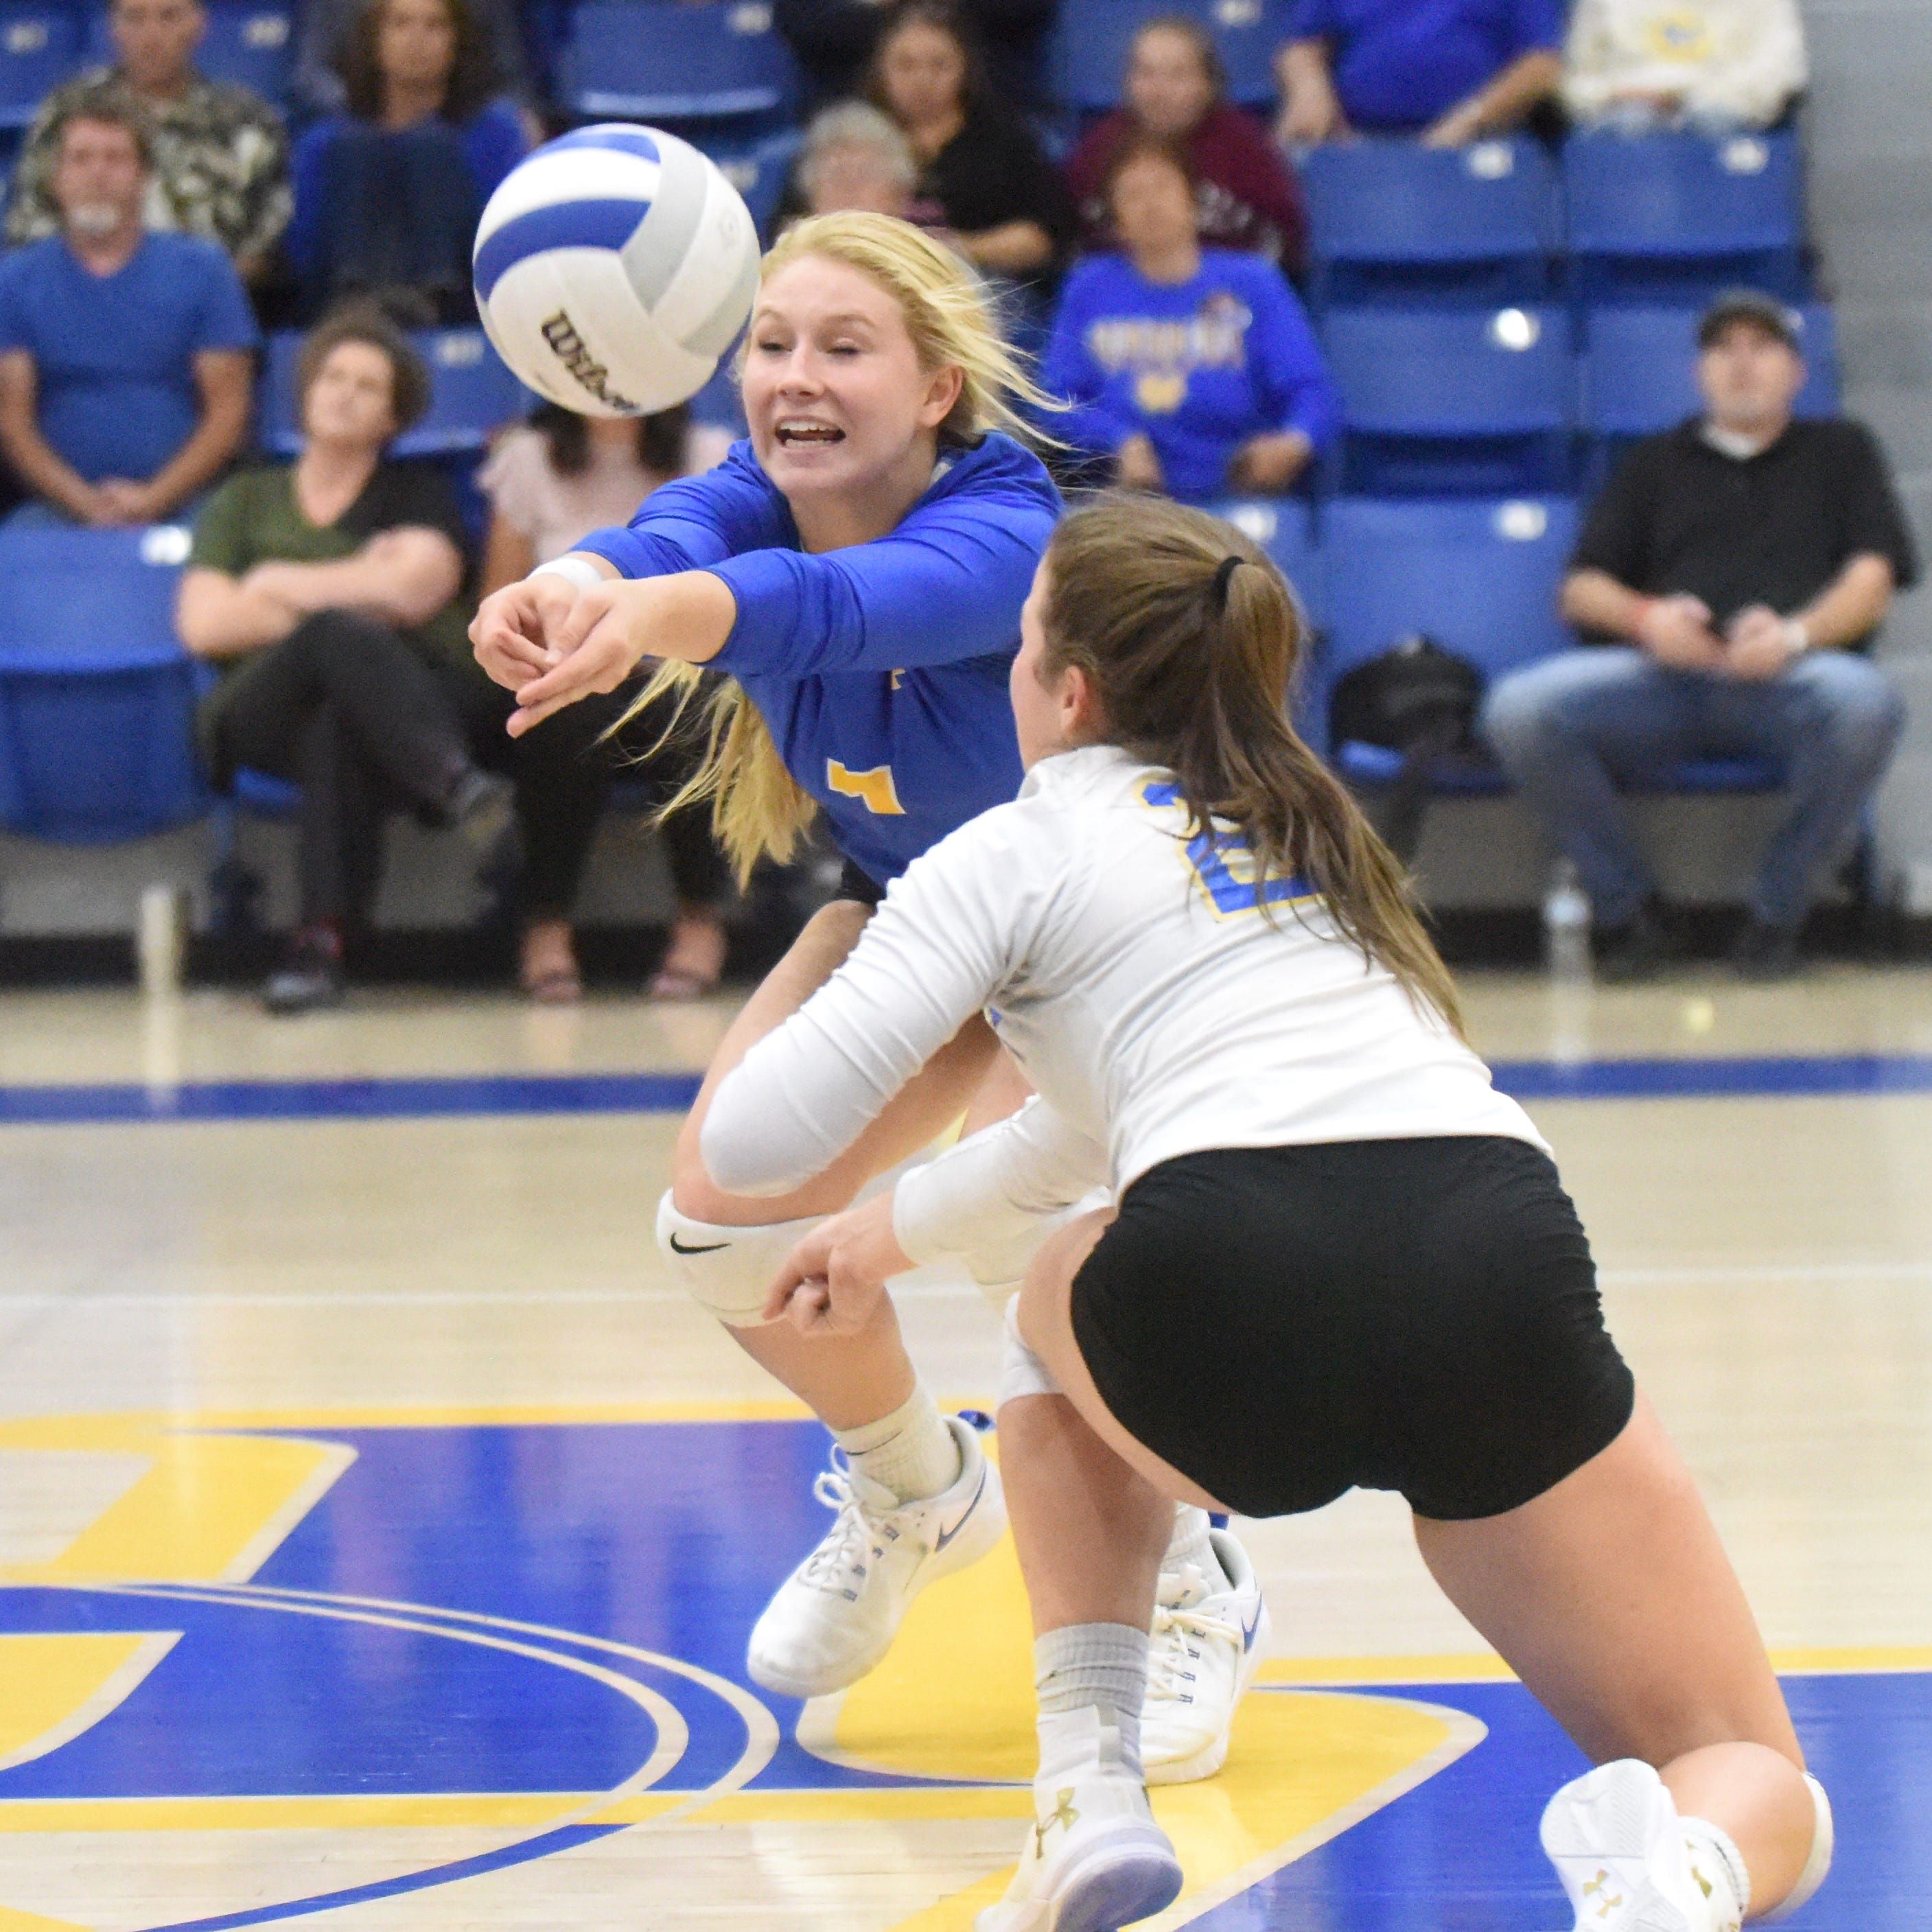 Lady Bombers take win streak into state tourney